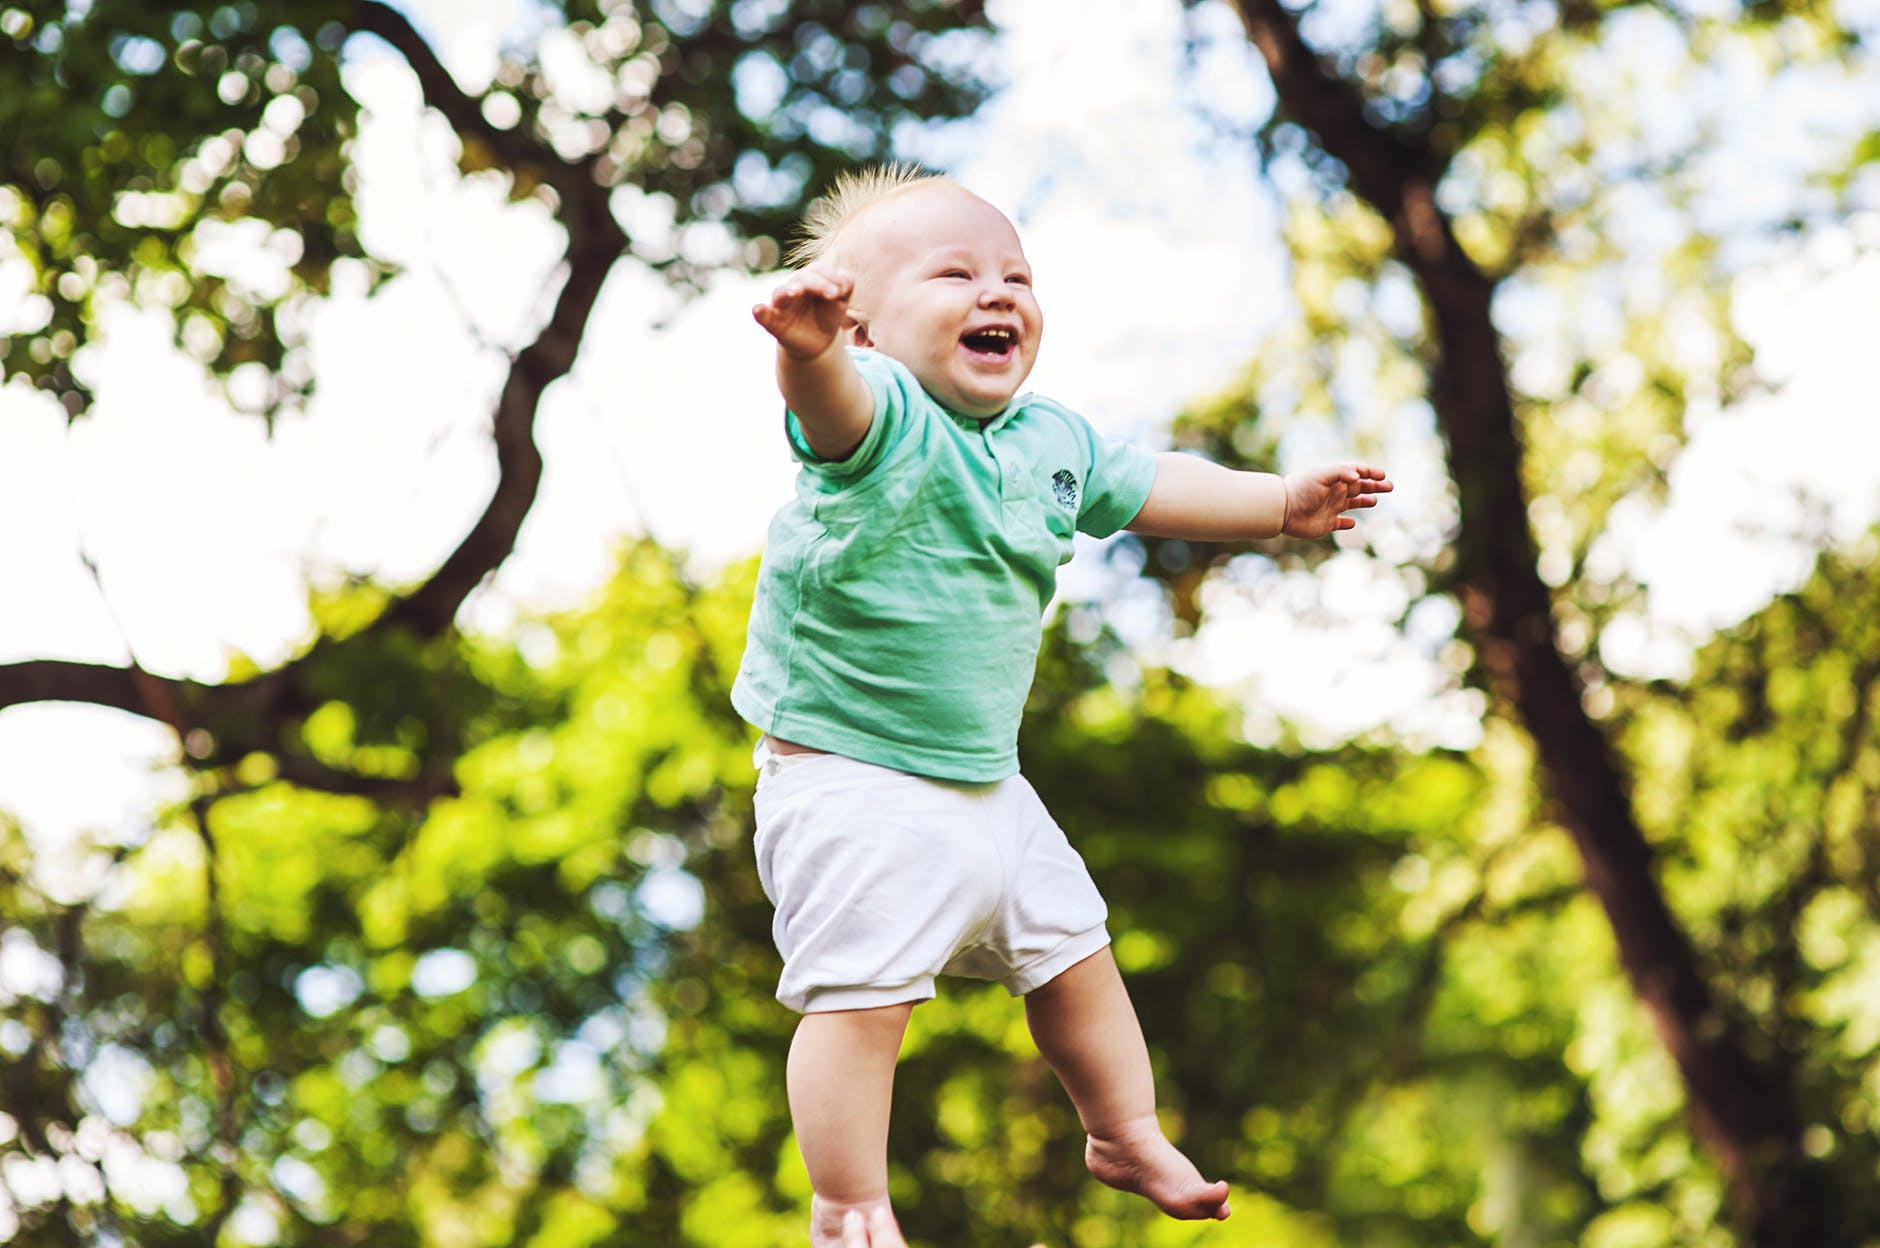 Baby tossed into air Joy on his face